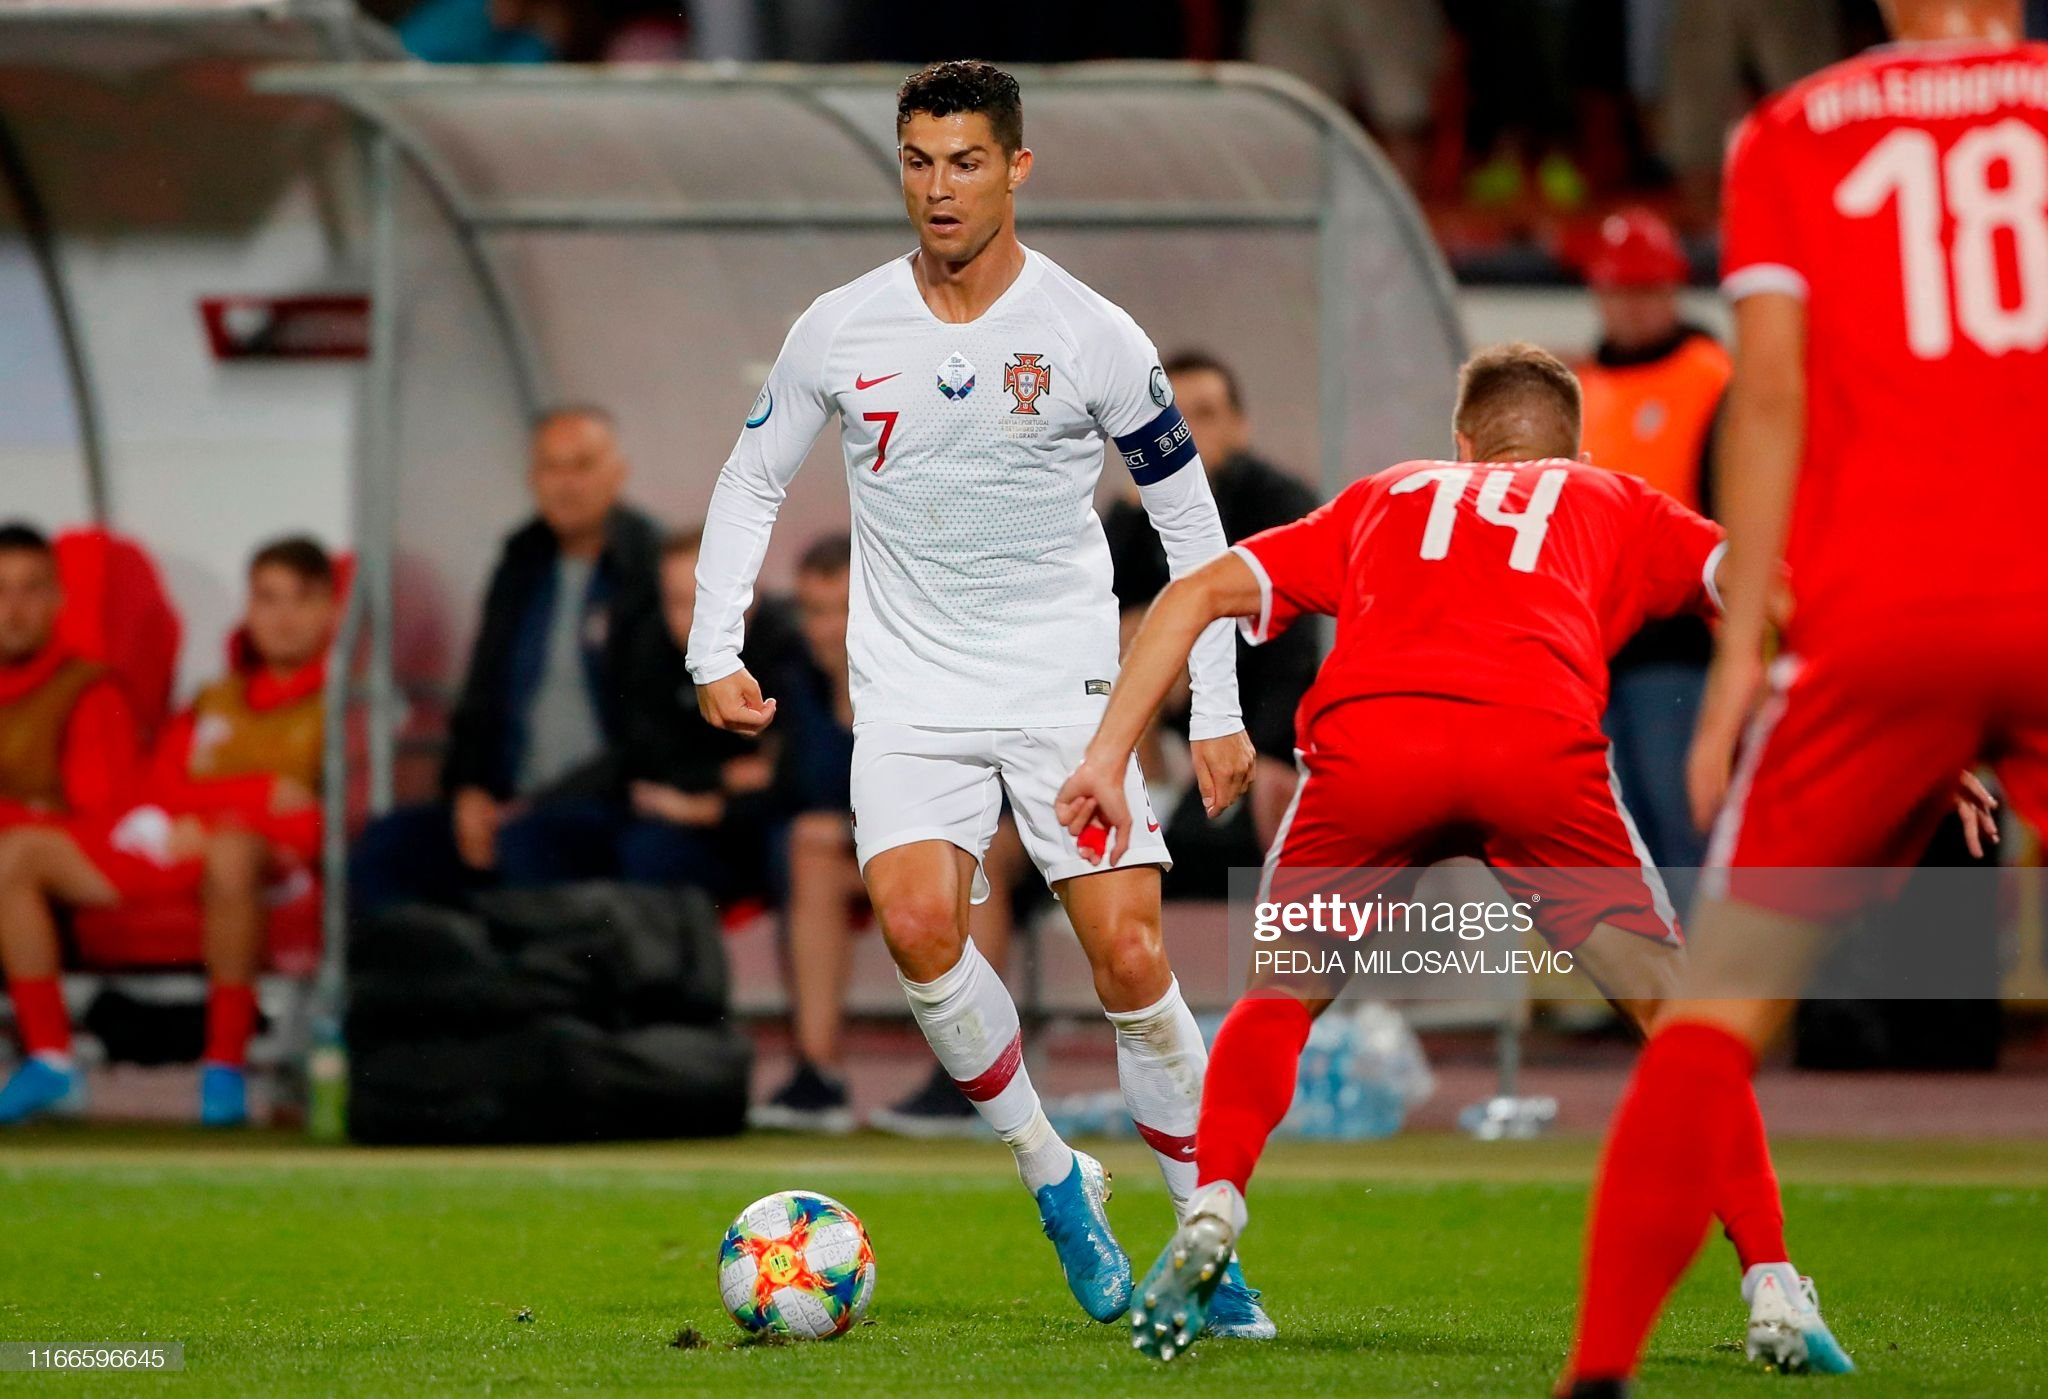 Serbia vs Portugal preview, prediction and odds